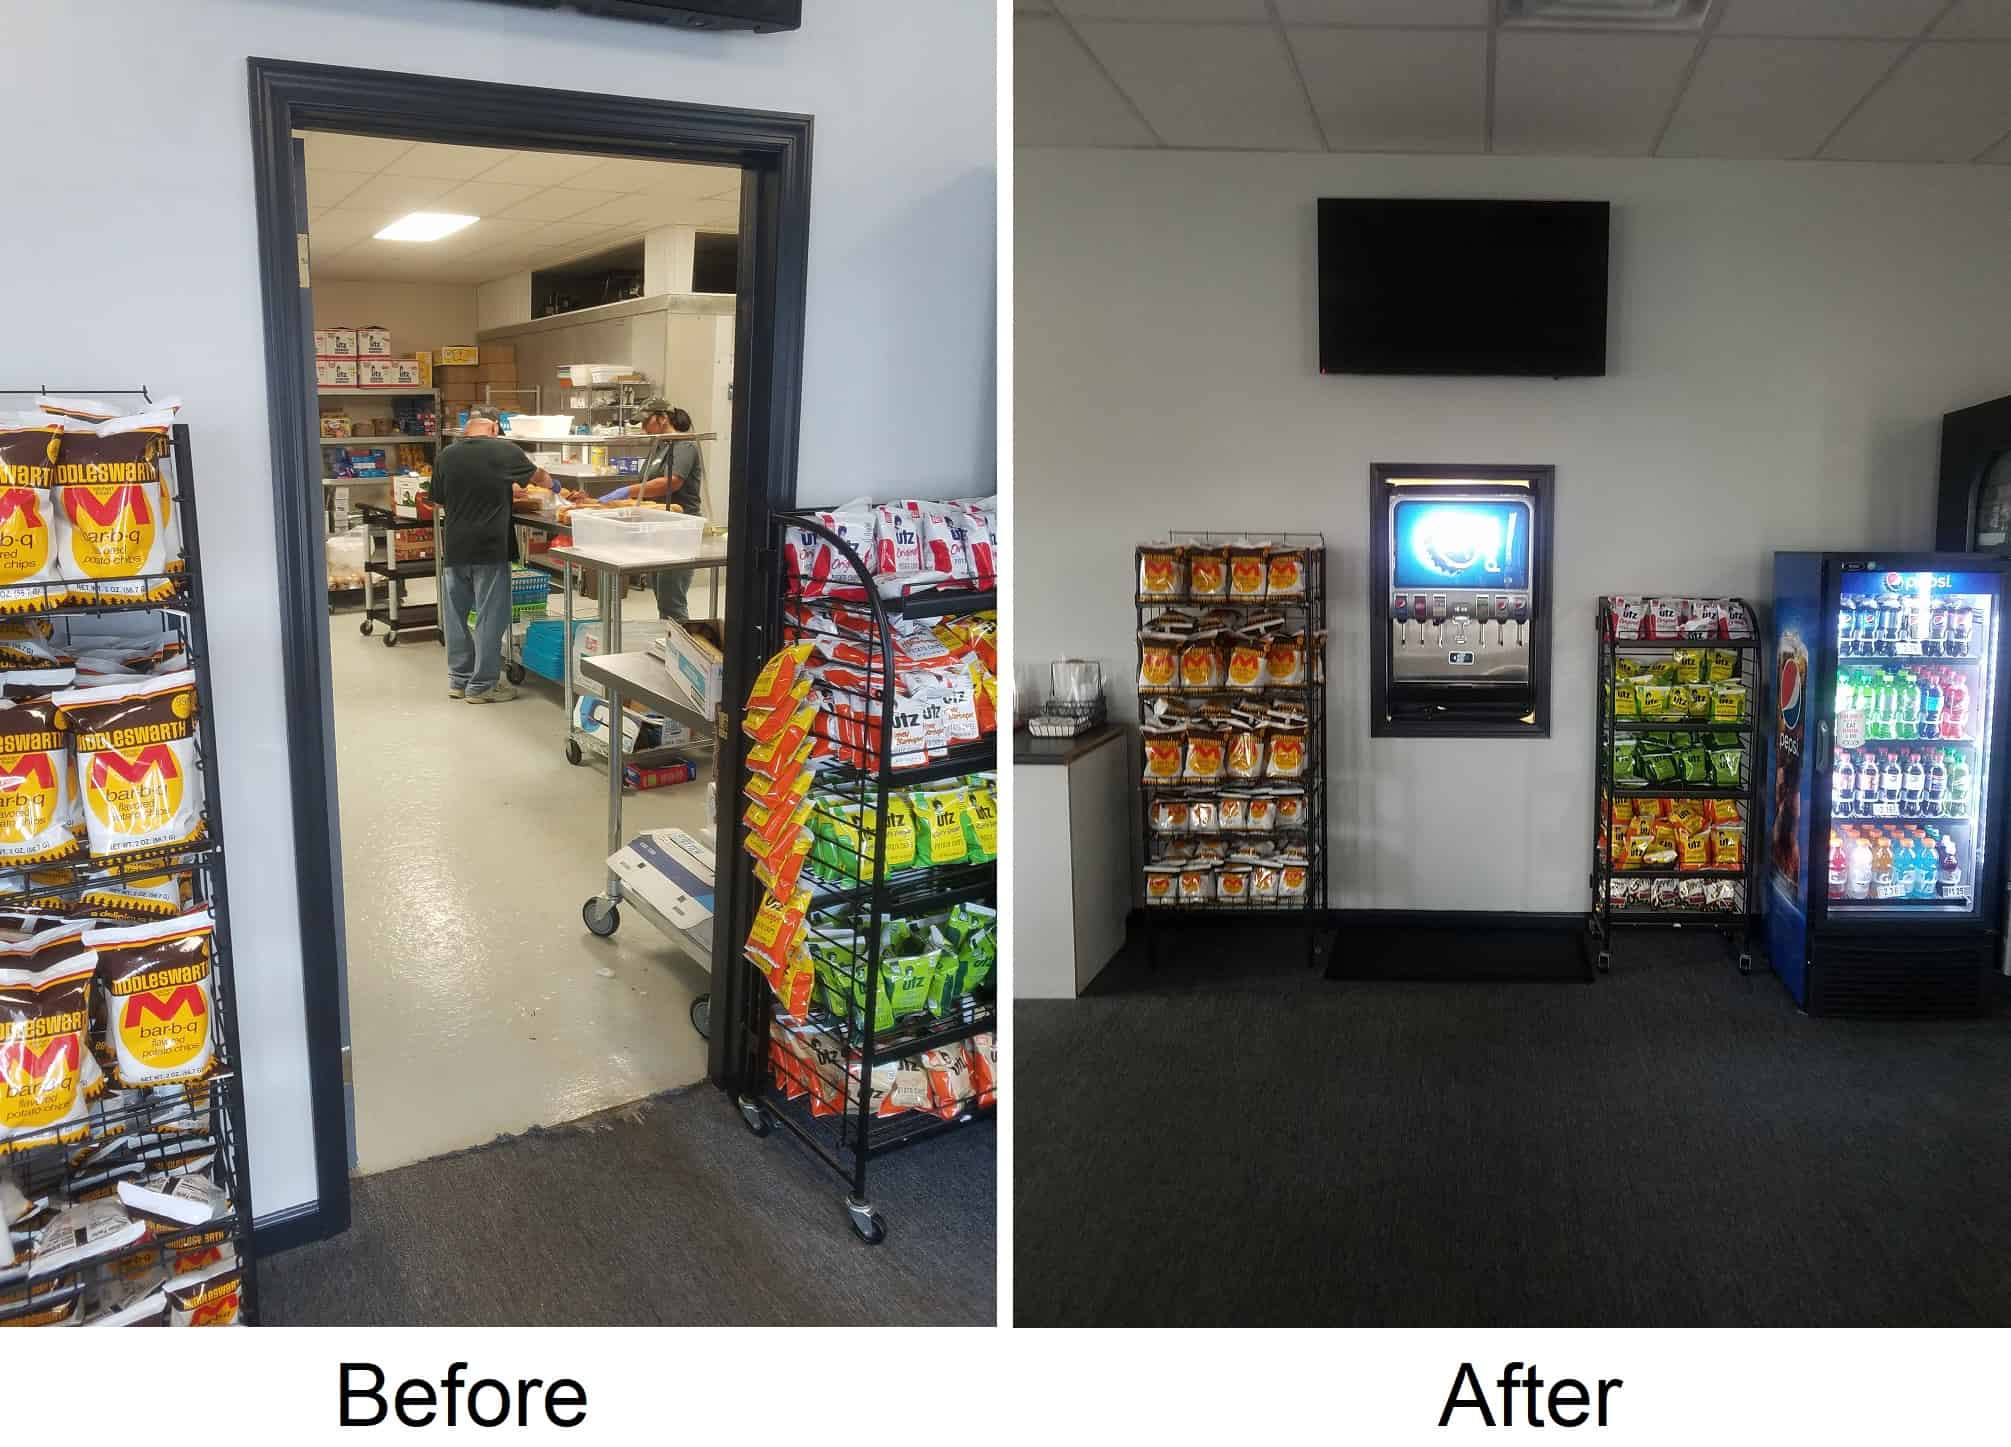 powerhouse subs remodel altoona pa before and after